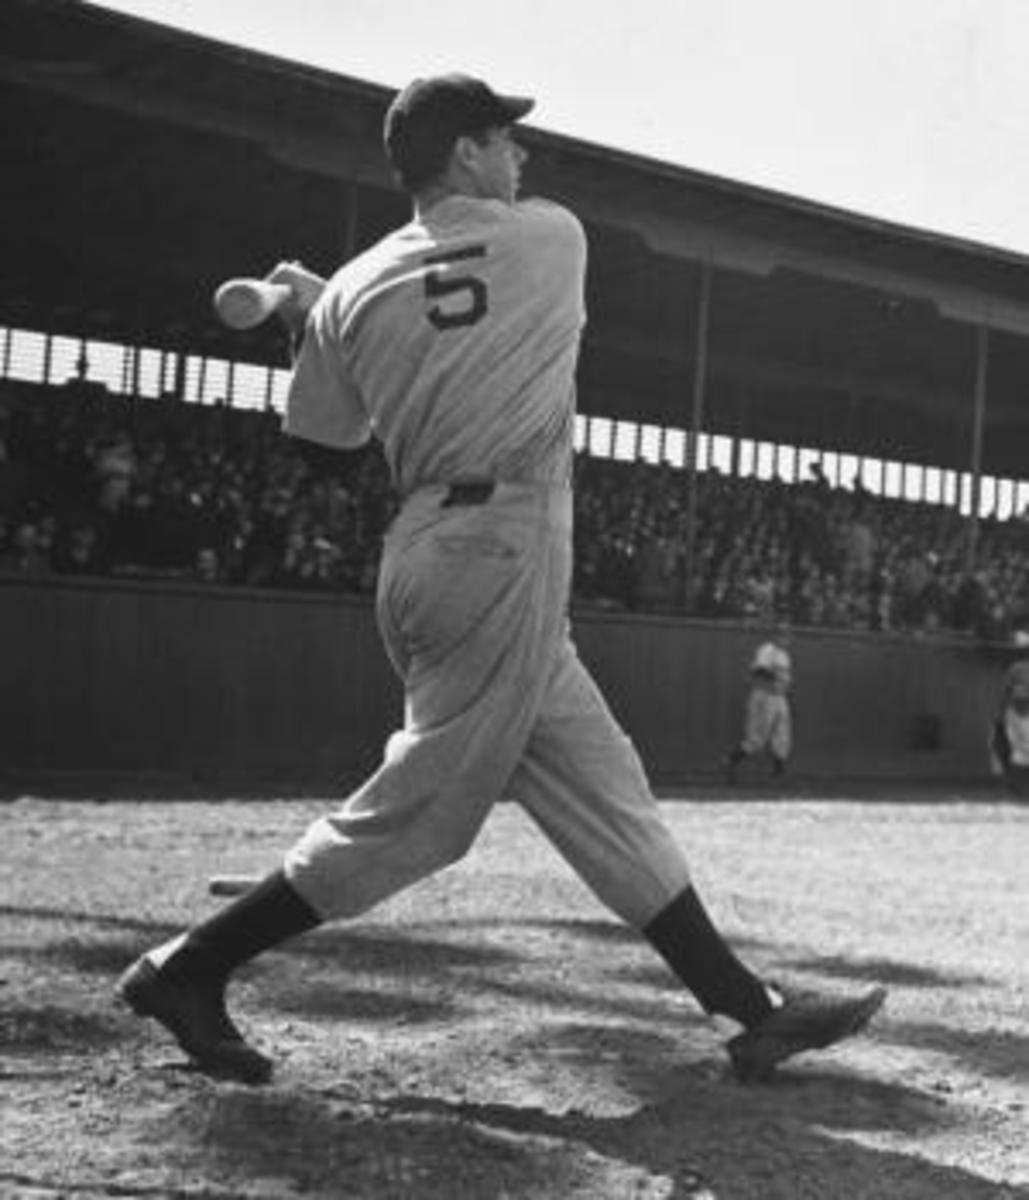 Yankee's Joe DiMaggio at bat. (Credit: Carl Mydans/The LIFE Picture Collection/Getty Images)